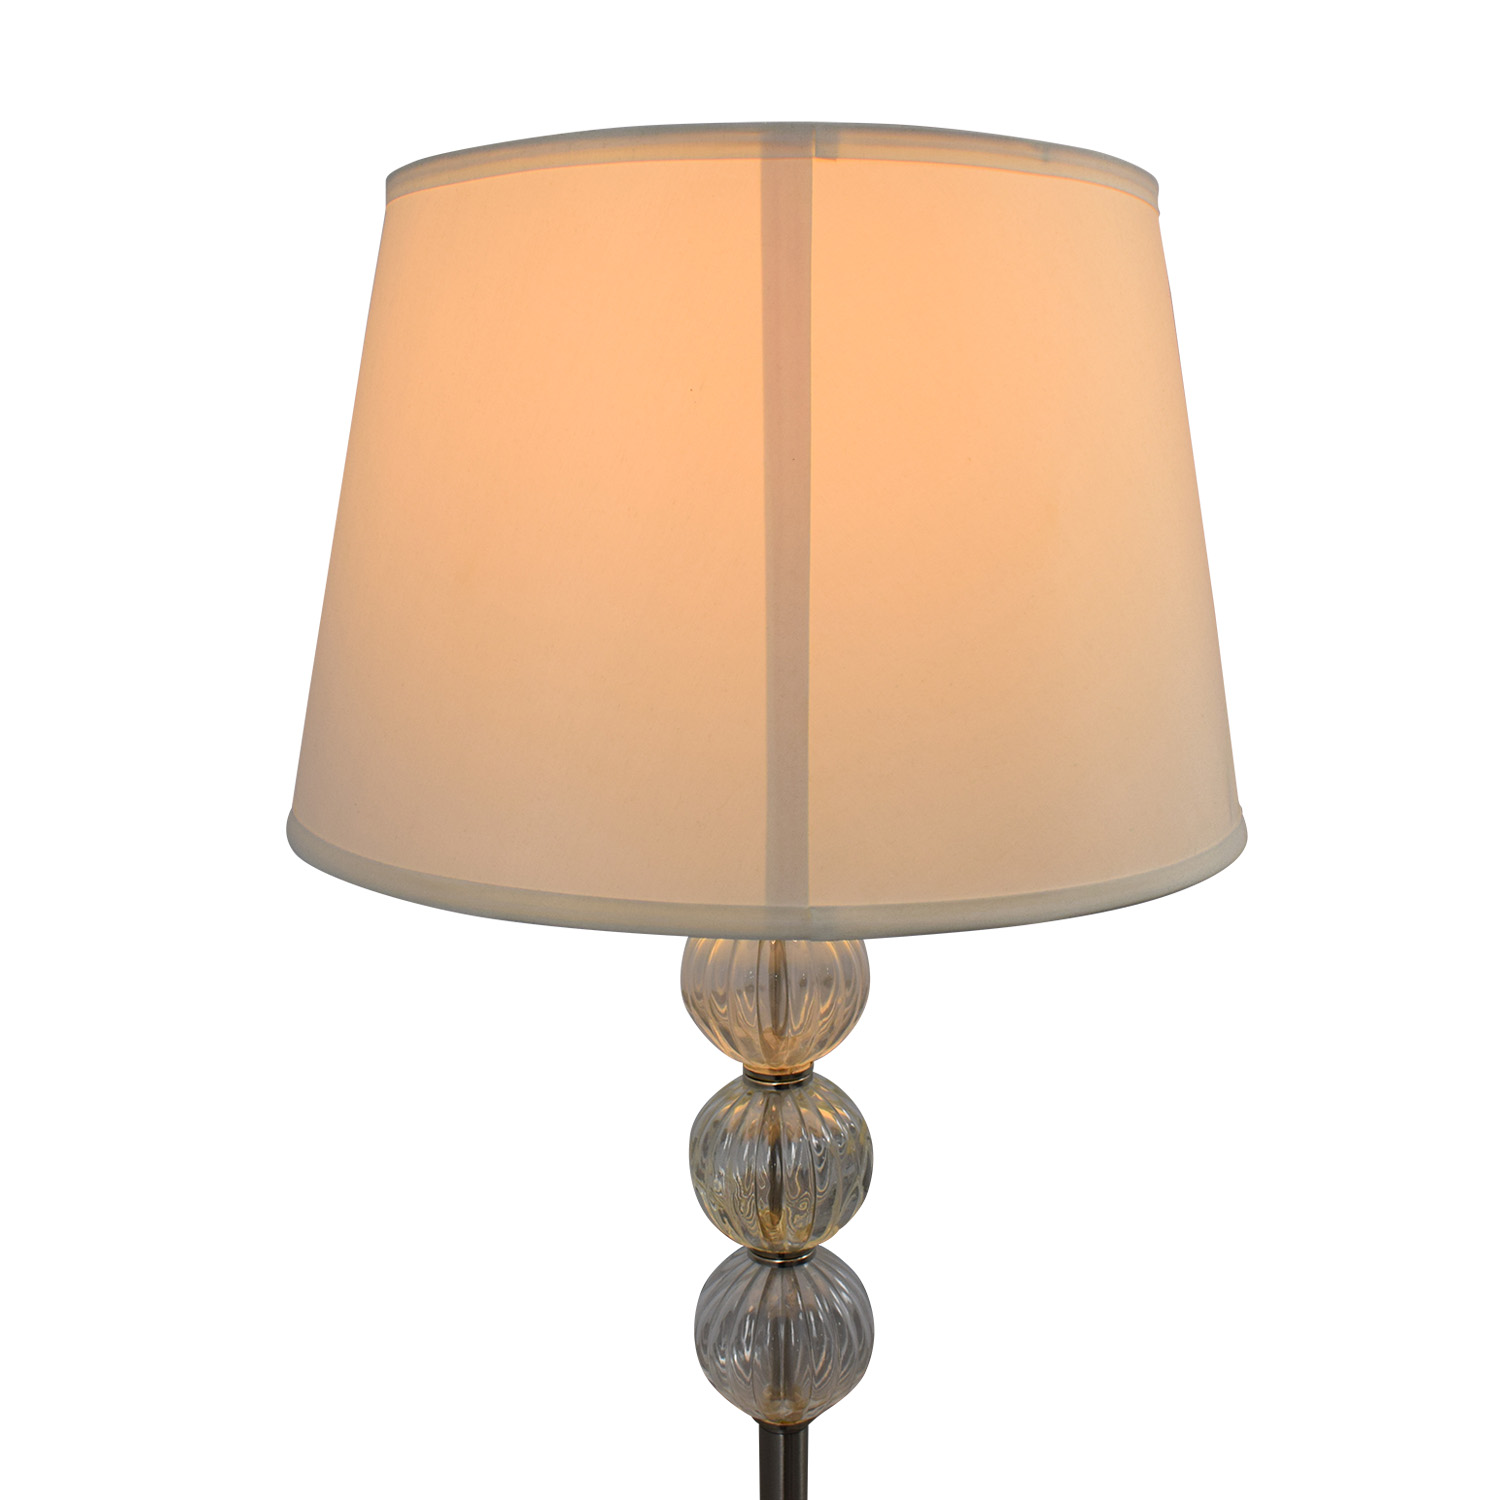 SH Lighting SH Lighting Ore Clear Glass Globes and Metal Floor Lamp second hand